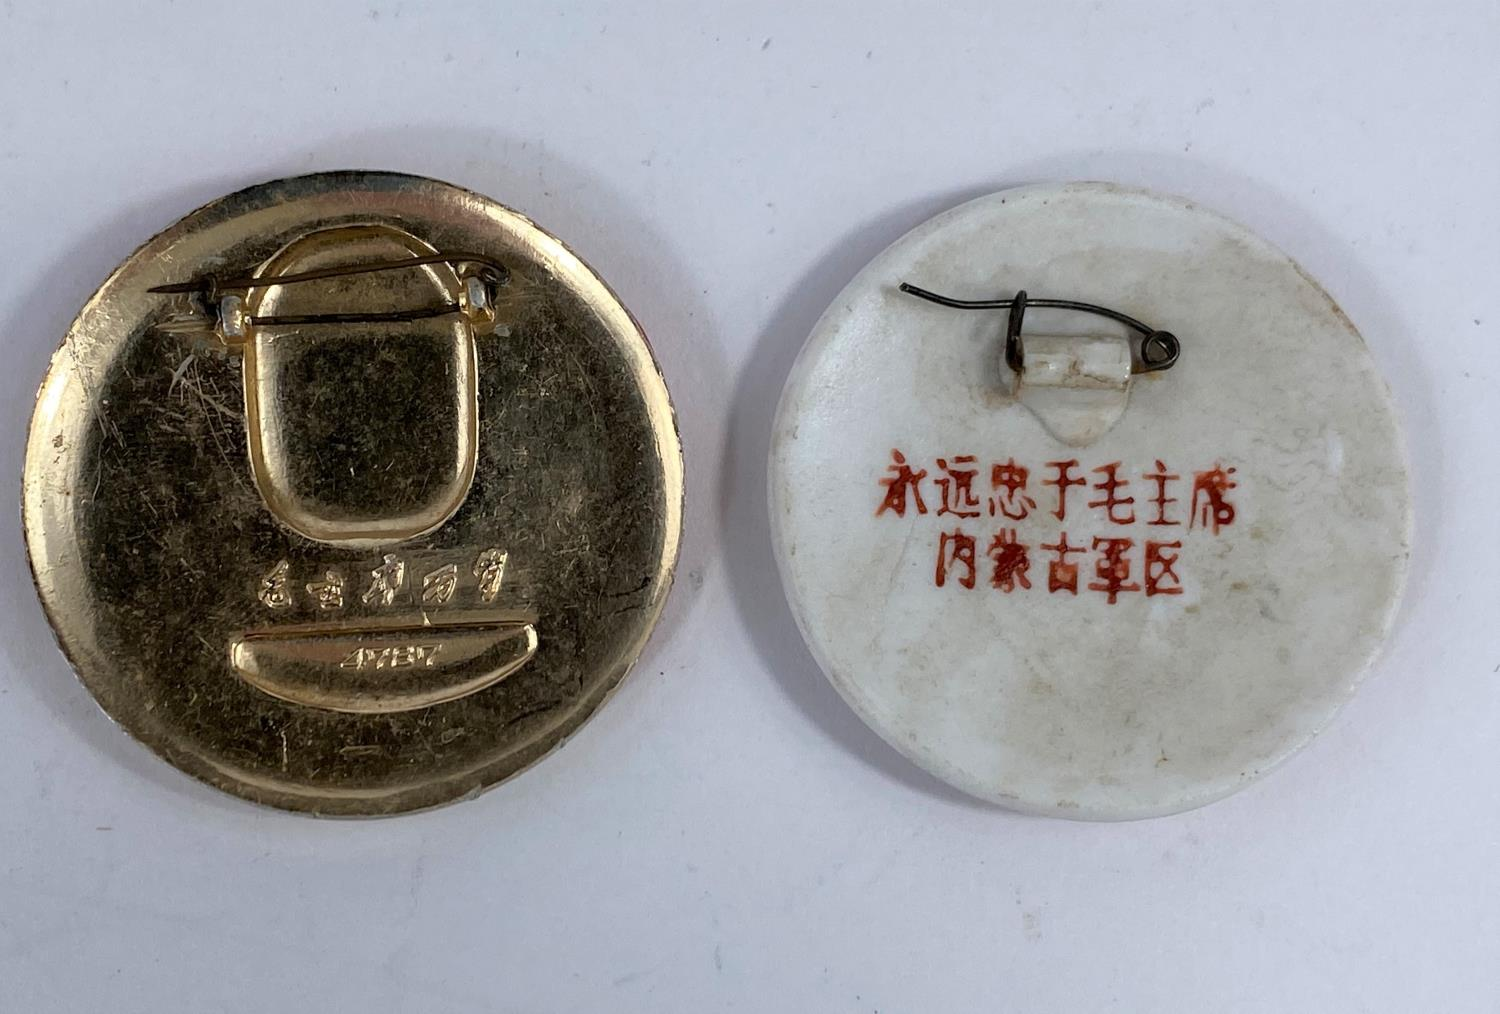 A Chinese porcelain circular brooch with colour image of Mao Zedong, post 1949, 45 mm, inscription - Image 2 of 2